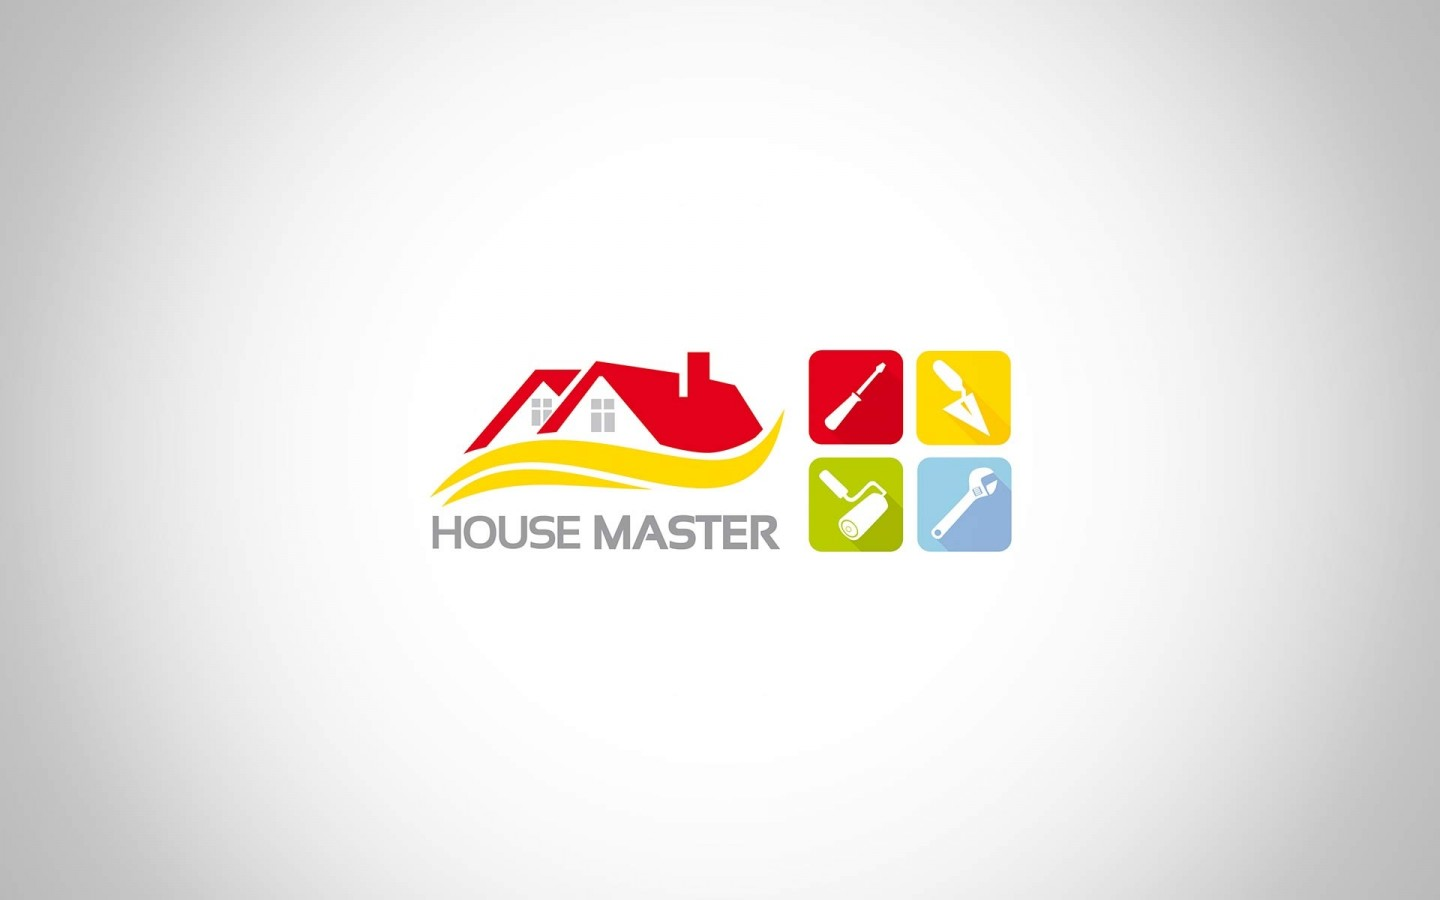 House Master Branding Project by Crevisio